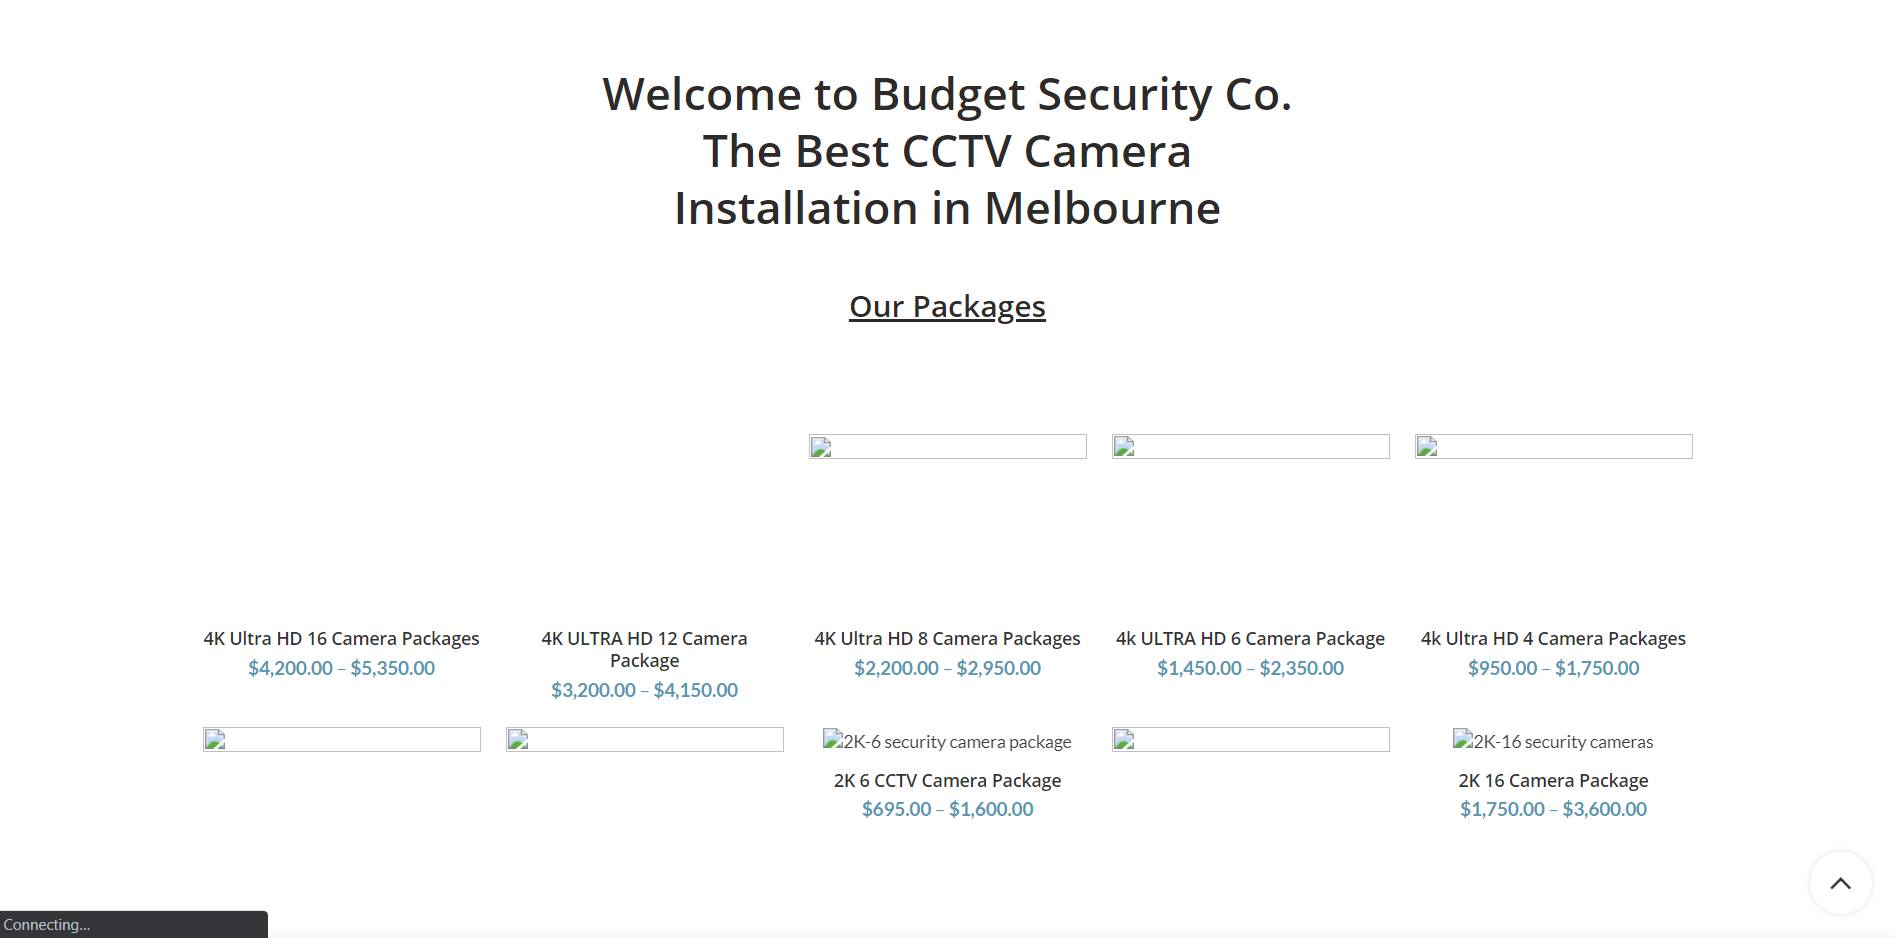 budget security co.